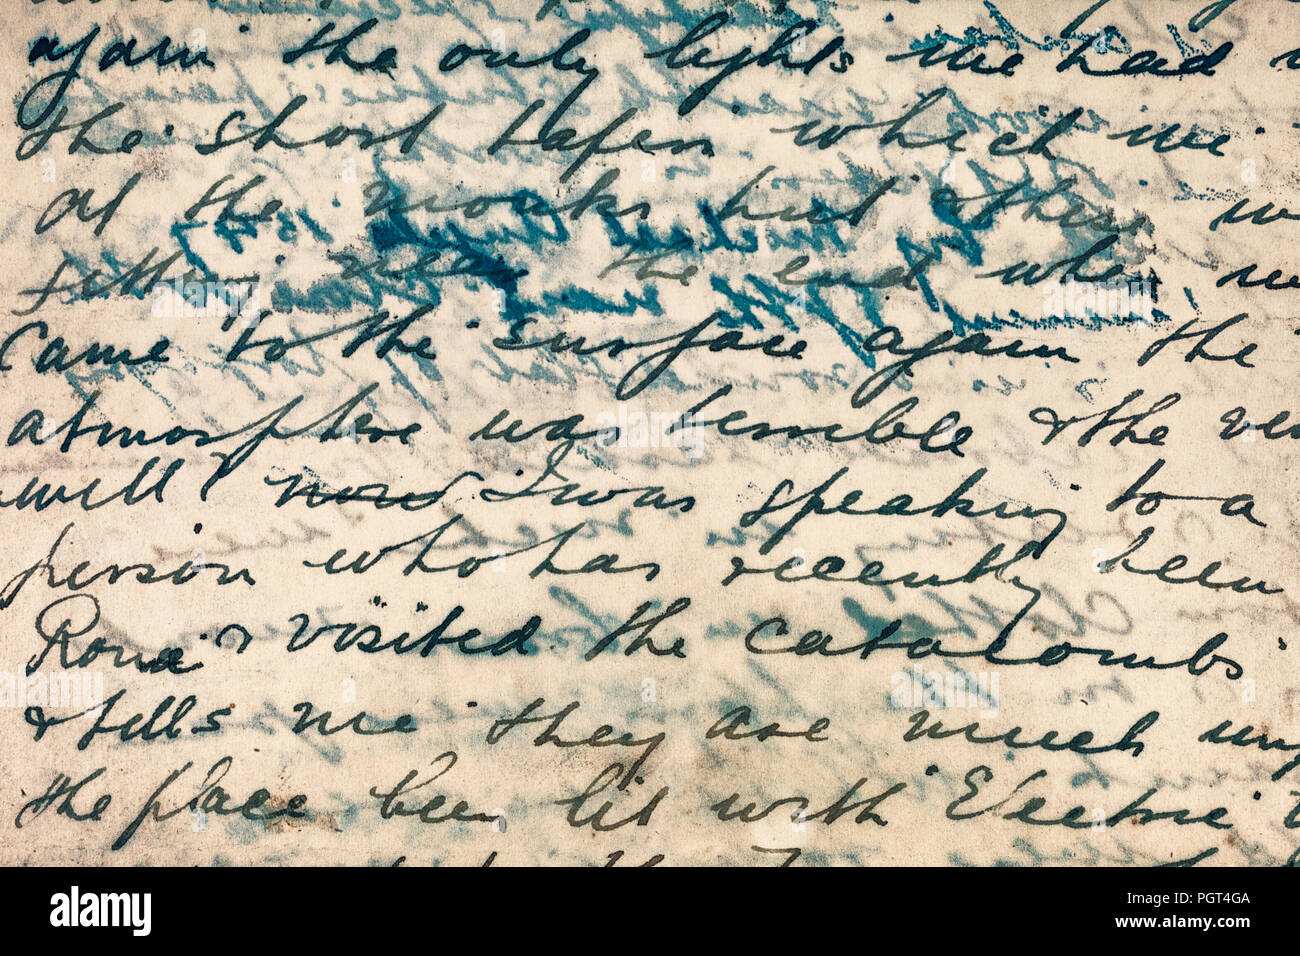 Lines from a 19th century letter about Rome. - Stock Image